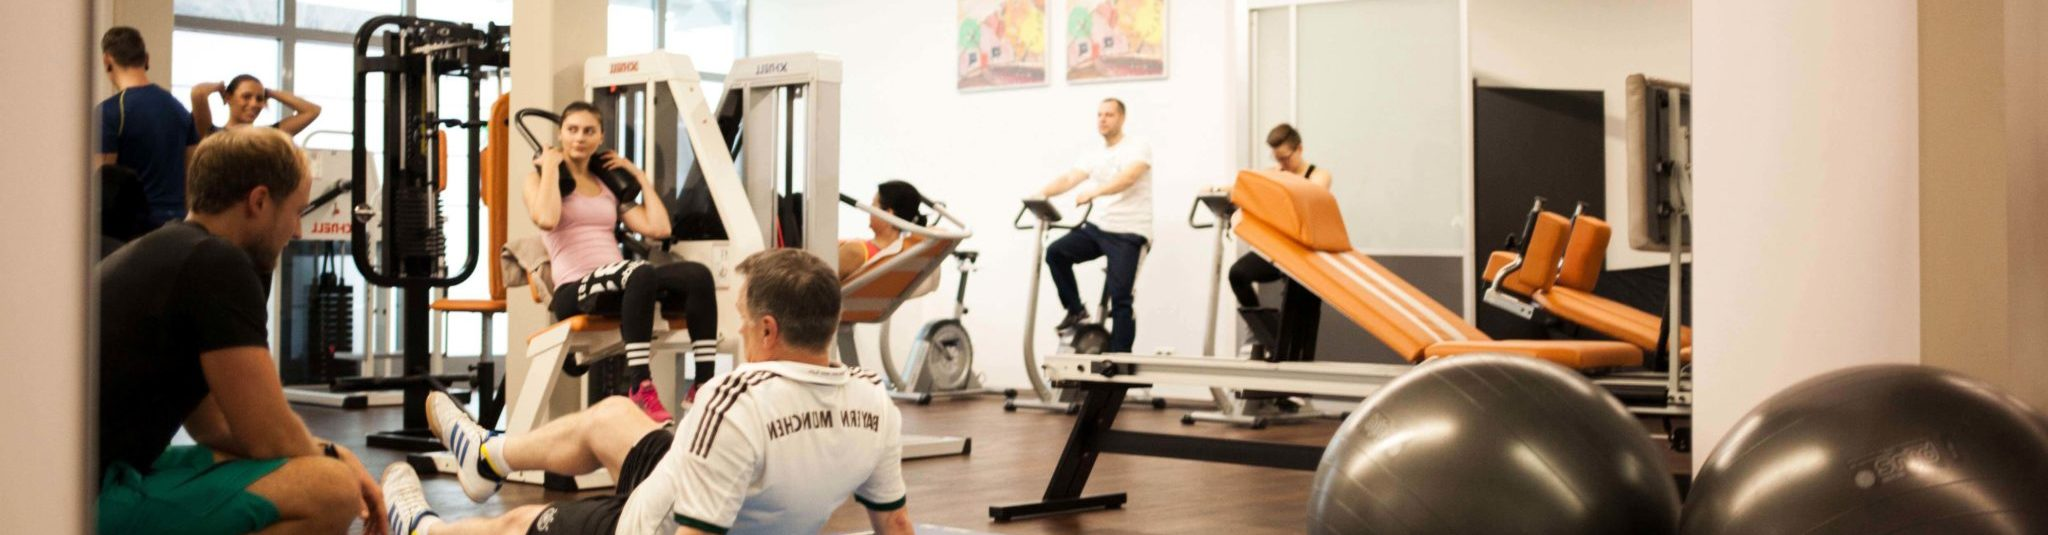 Physics, Zentrum für Physiotherapie und Trainingstherapie